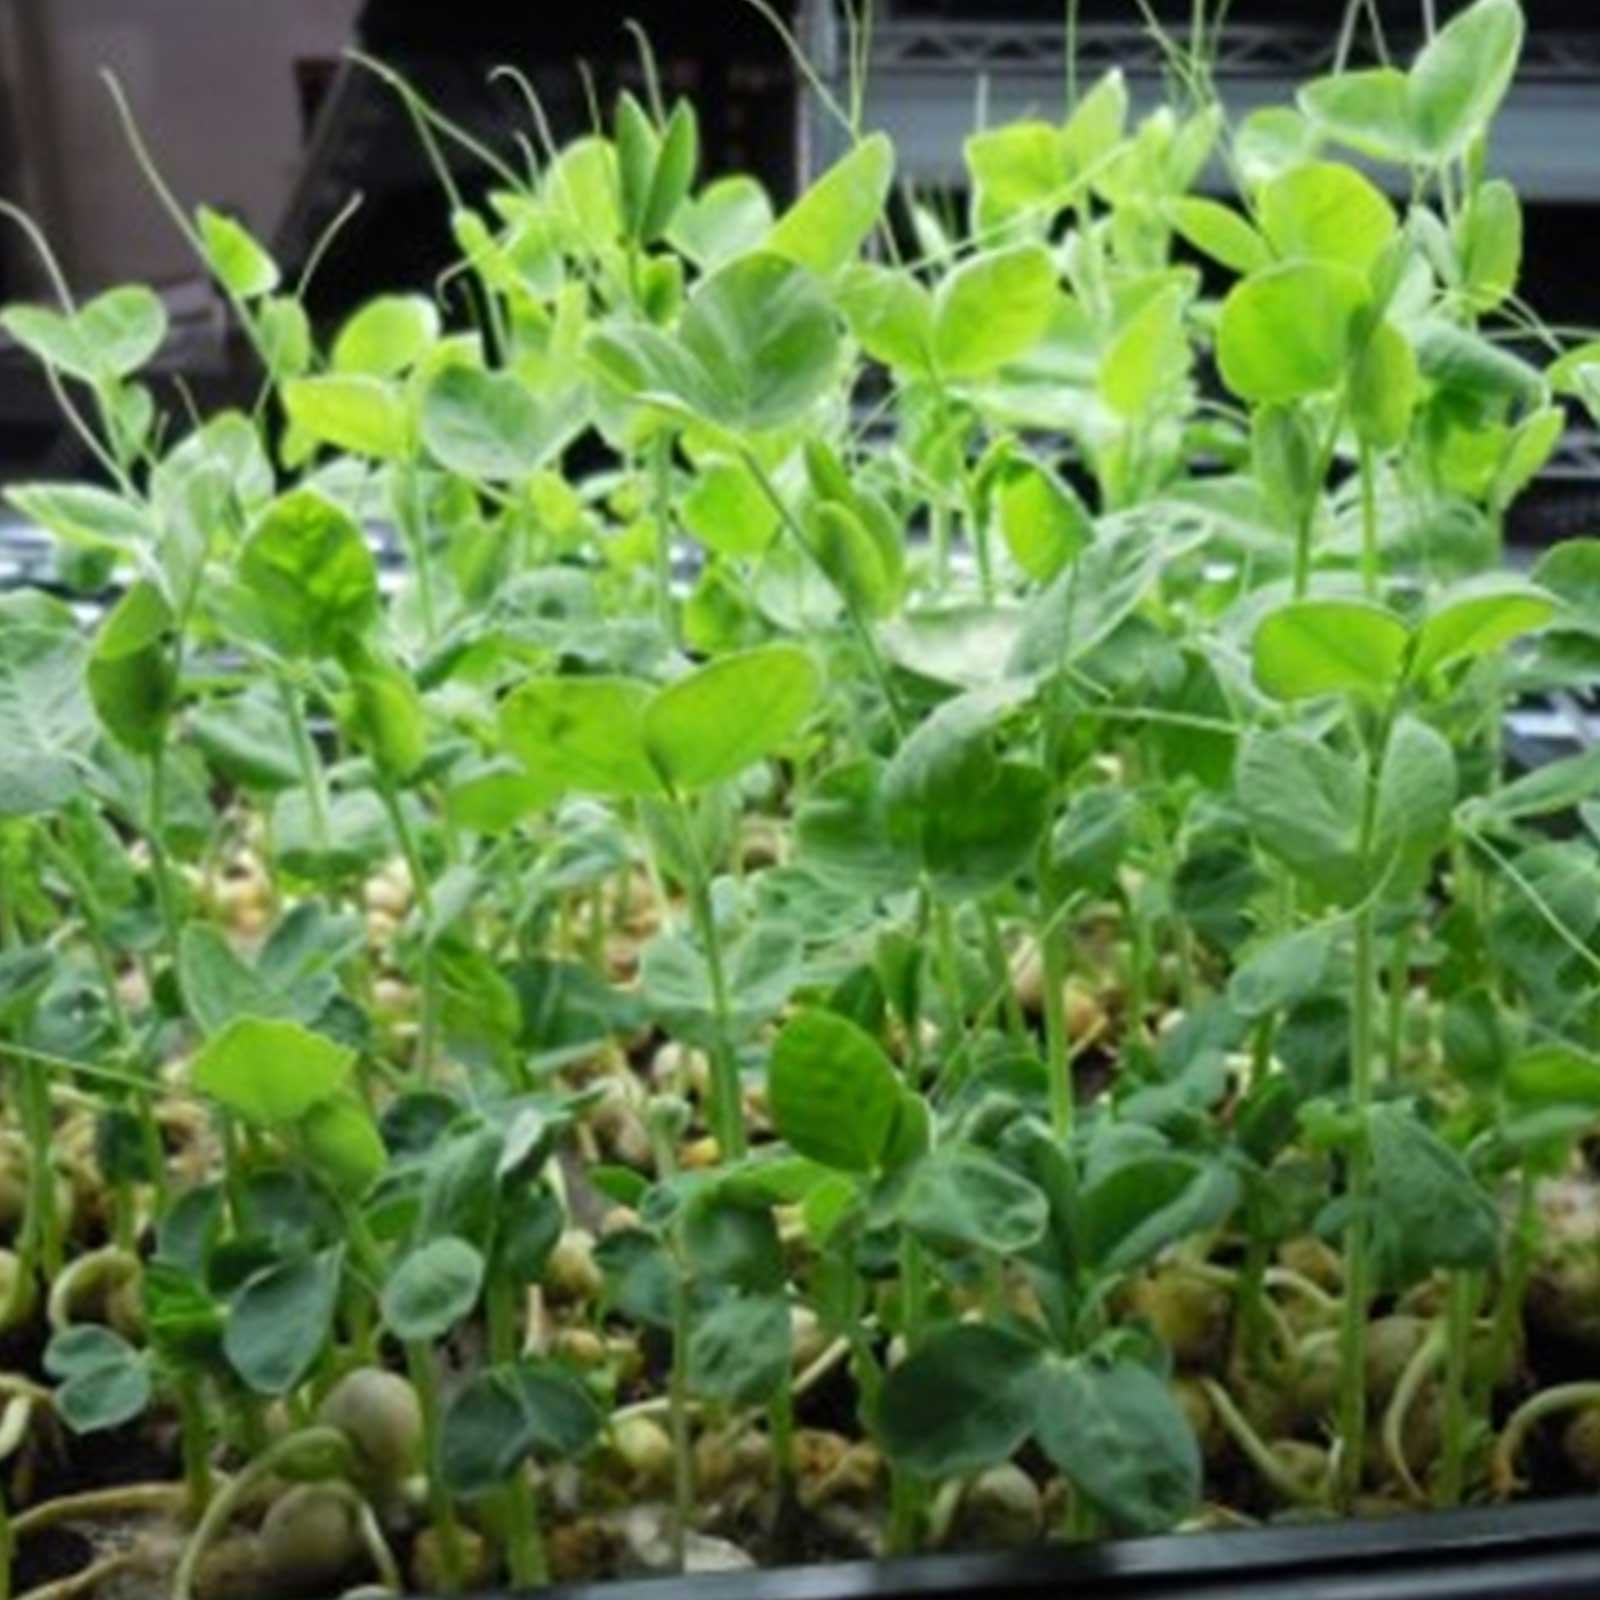 Sprouting Green Pea Seeds - 25 Lbs Bulk - Non-GMO, Organic Sprout & Microgreens Shoots Seed - Grow Sprouts